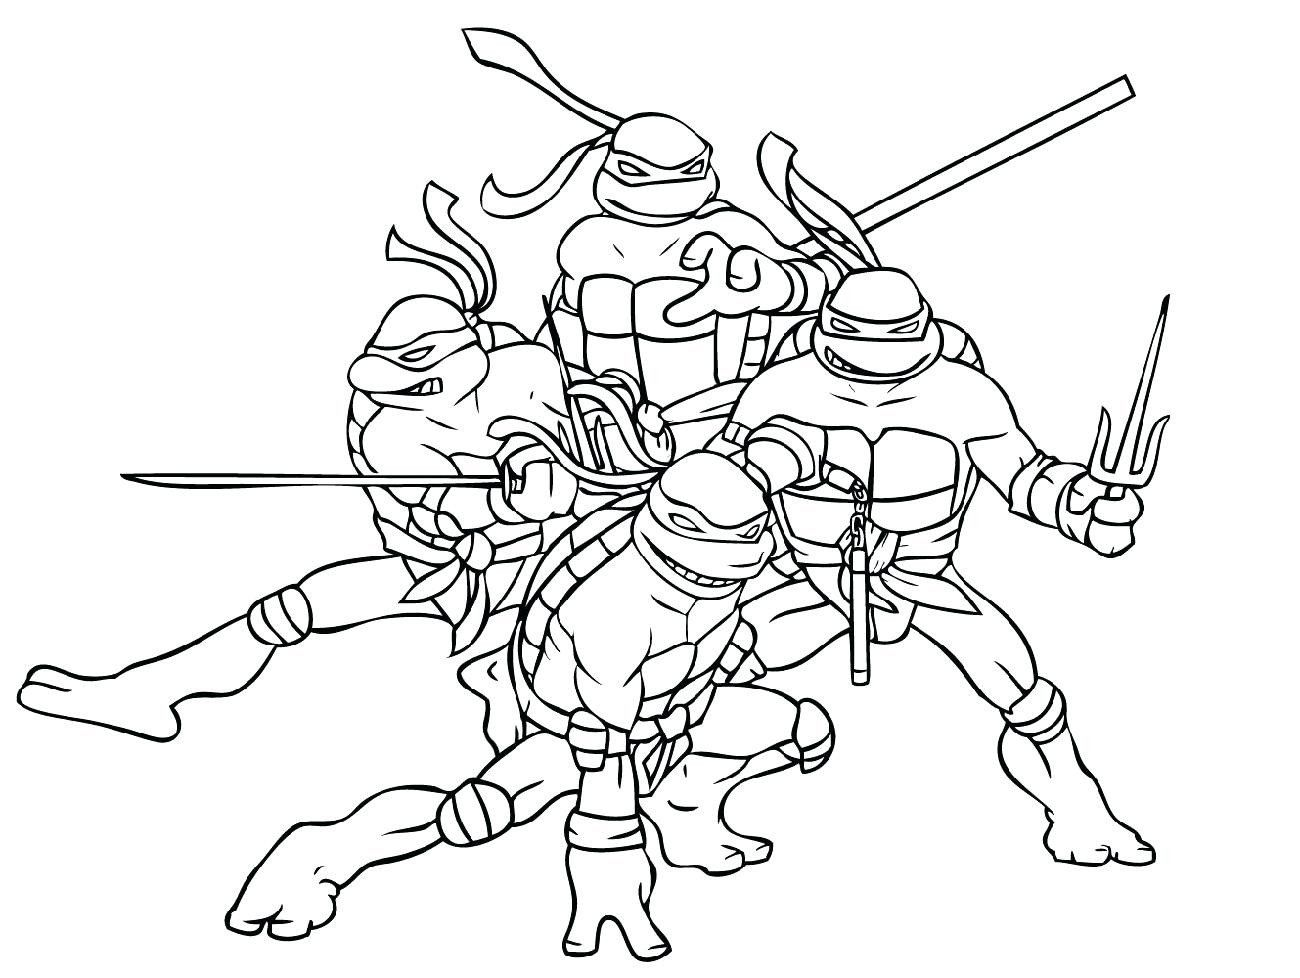 Ninja Turtles Coloring Pages Beautiful Teenage Mutant Ninja Turtles Coloring Pages Nickelodeon In 2020 Turtle Coloring Pages Ninja Turtle Coloring Pages Ninja Turtles